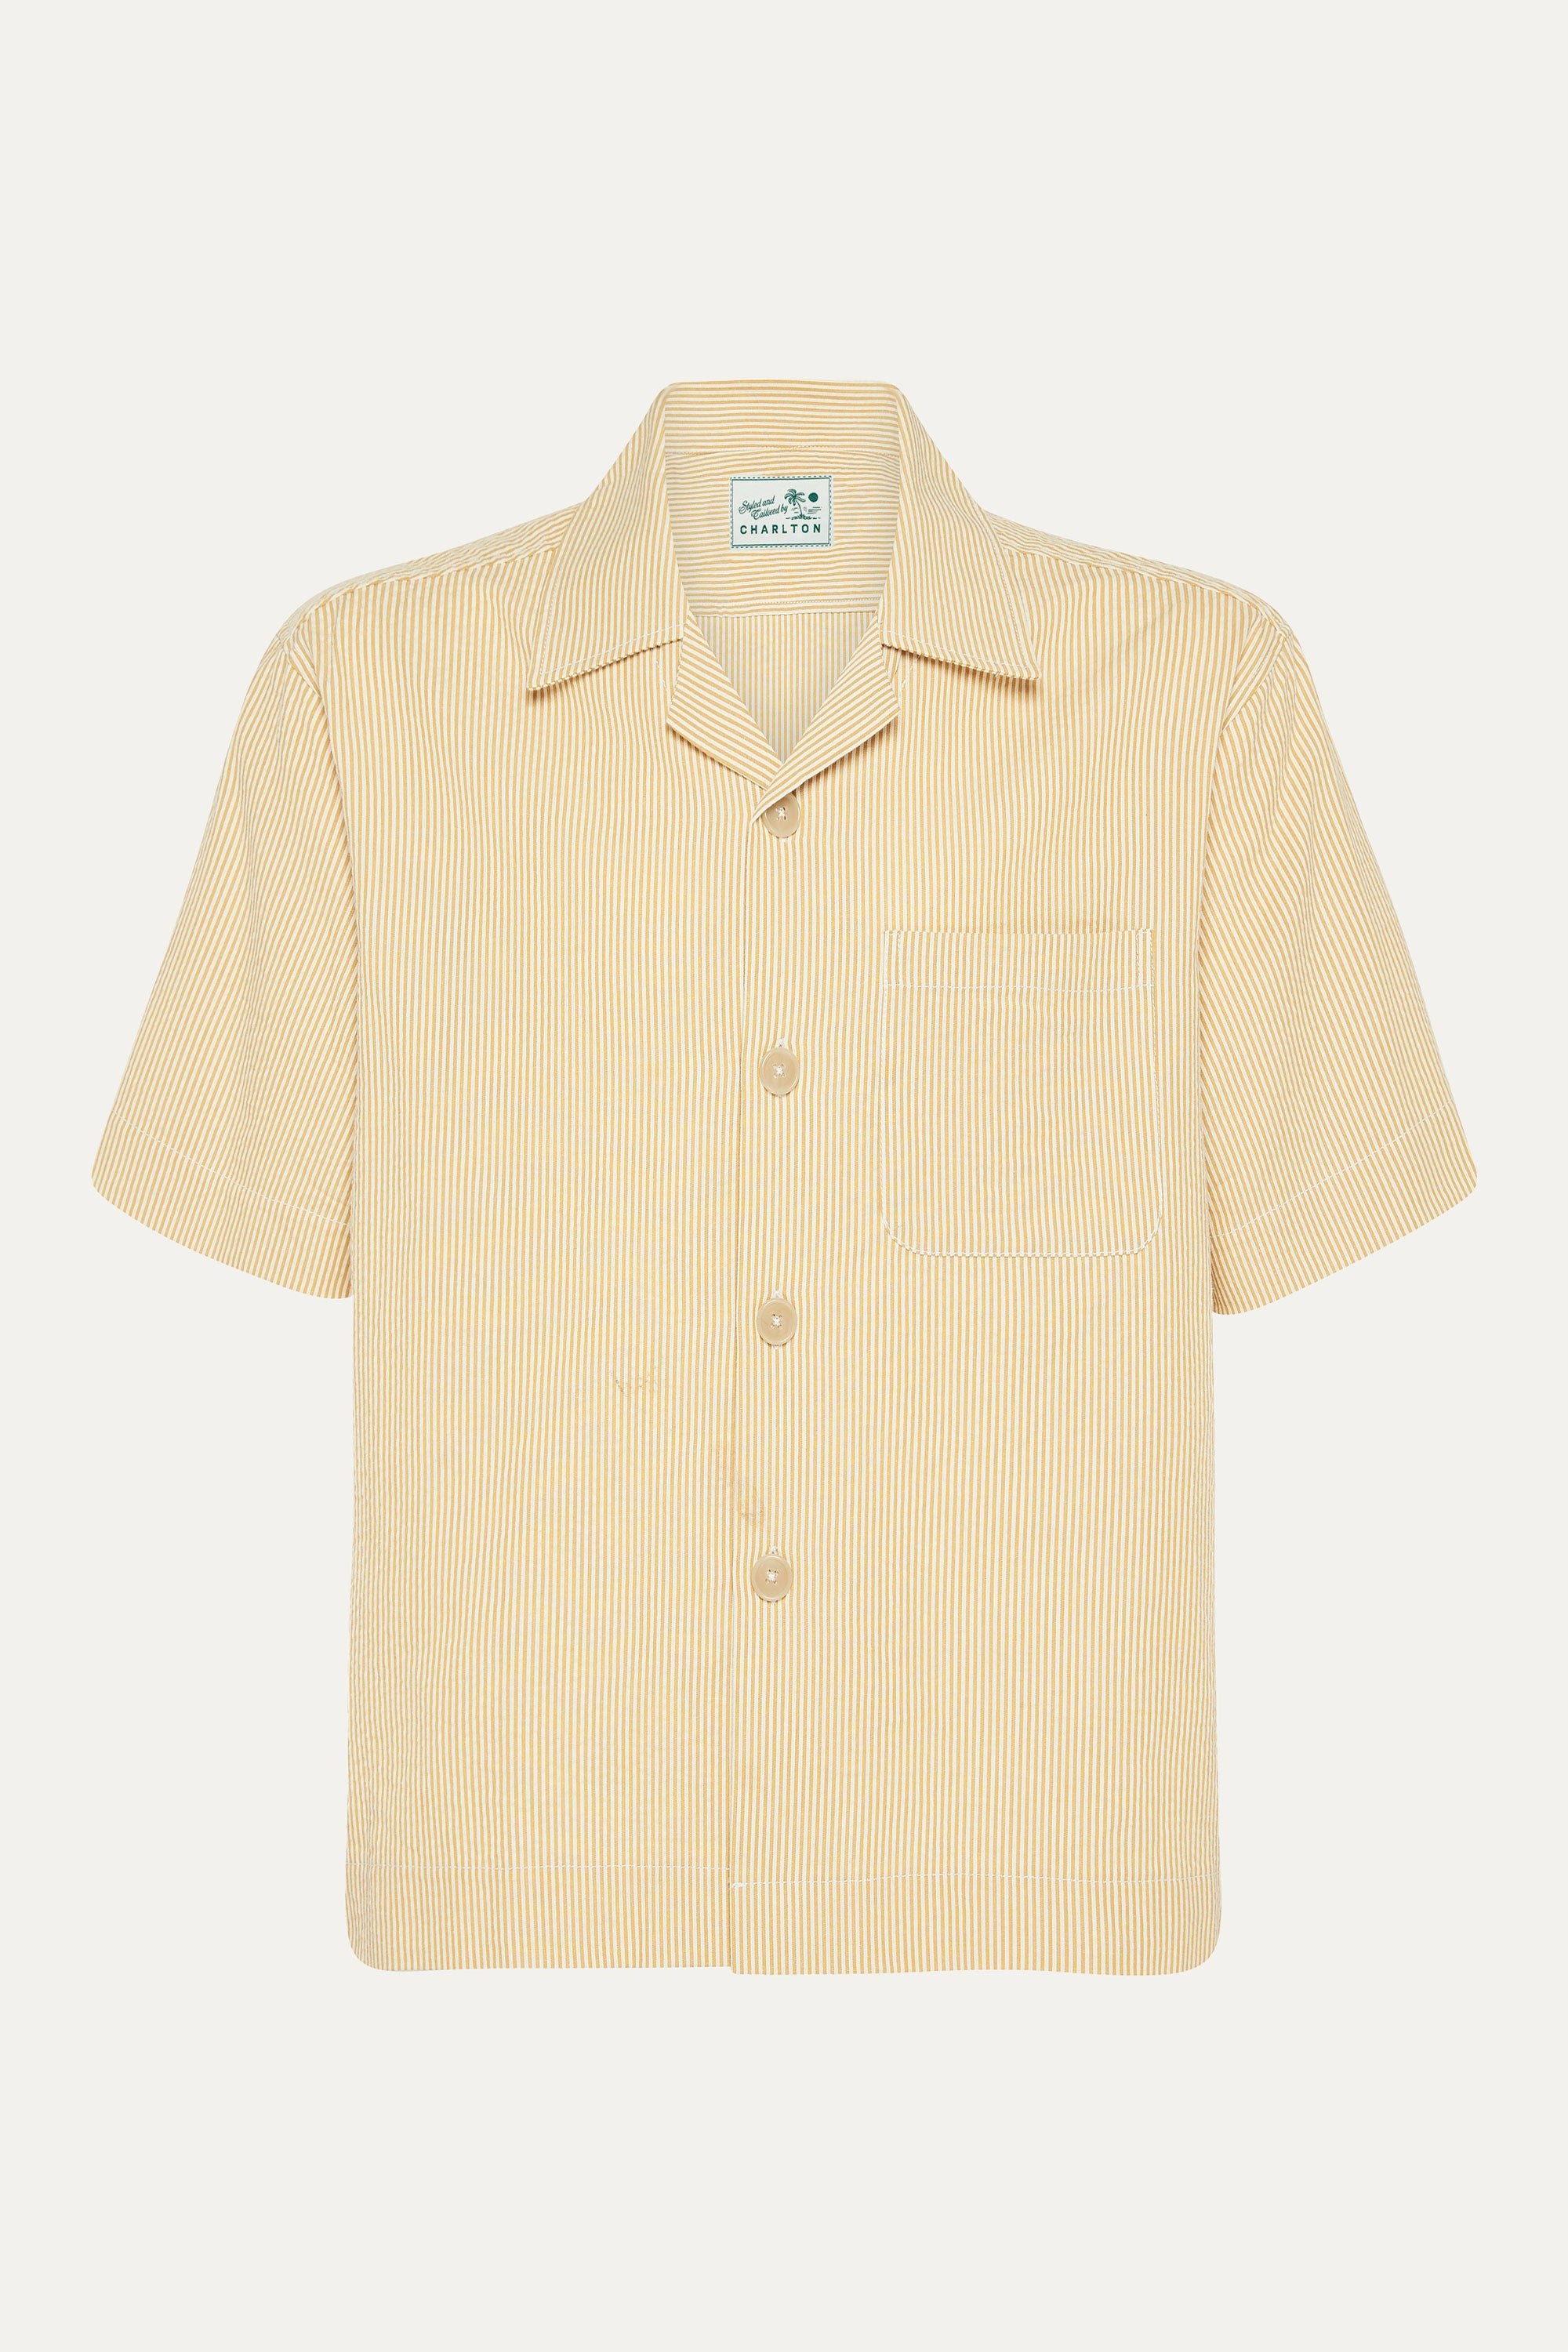 Japanese Yellow Stripe Shirt